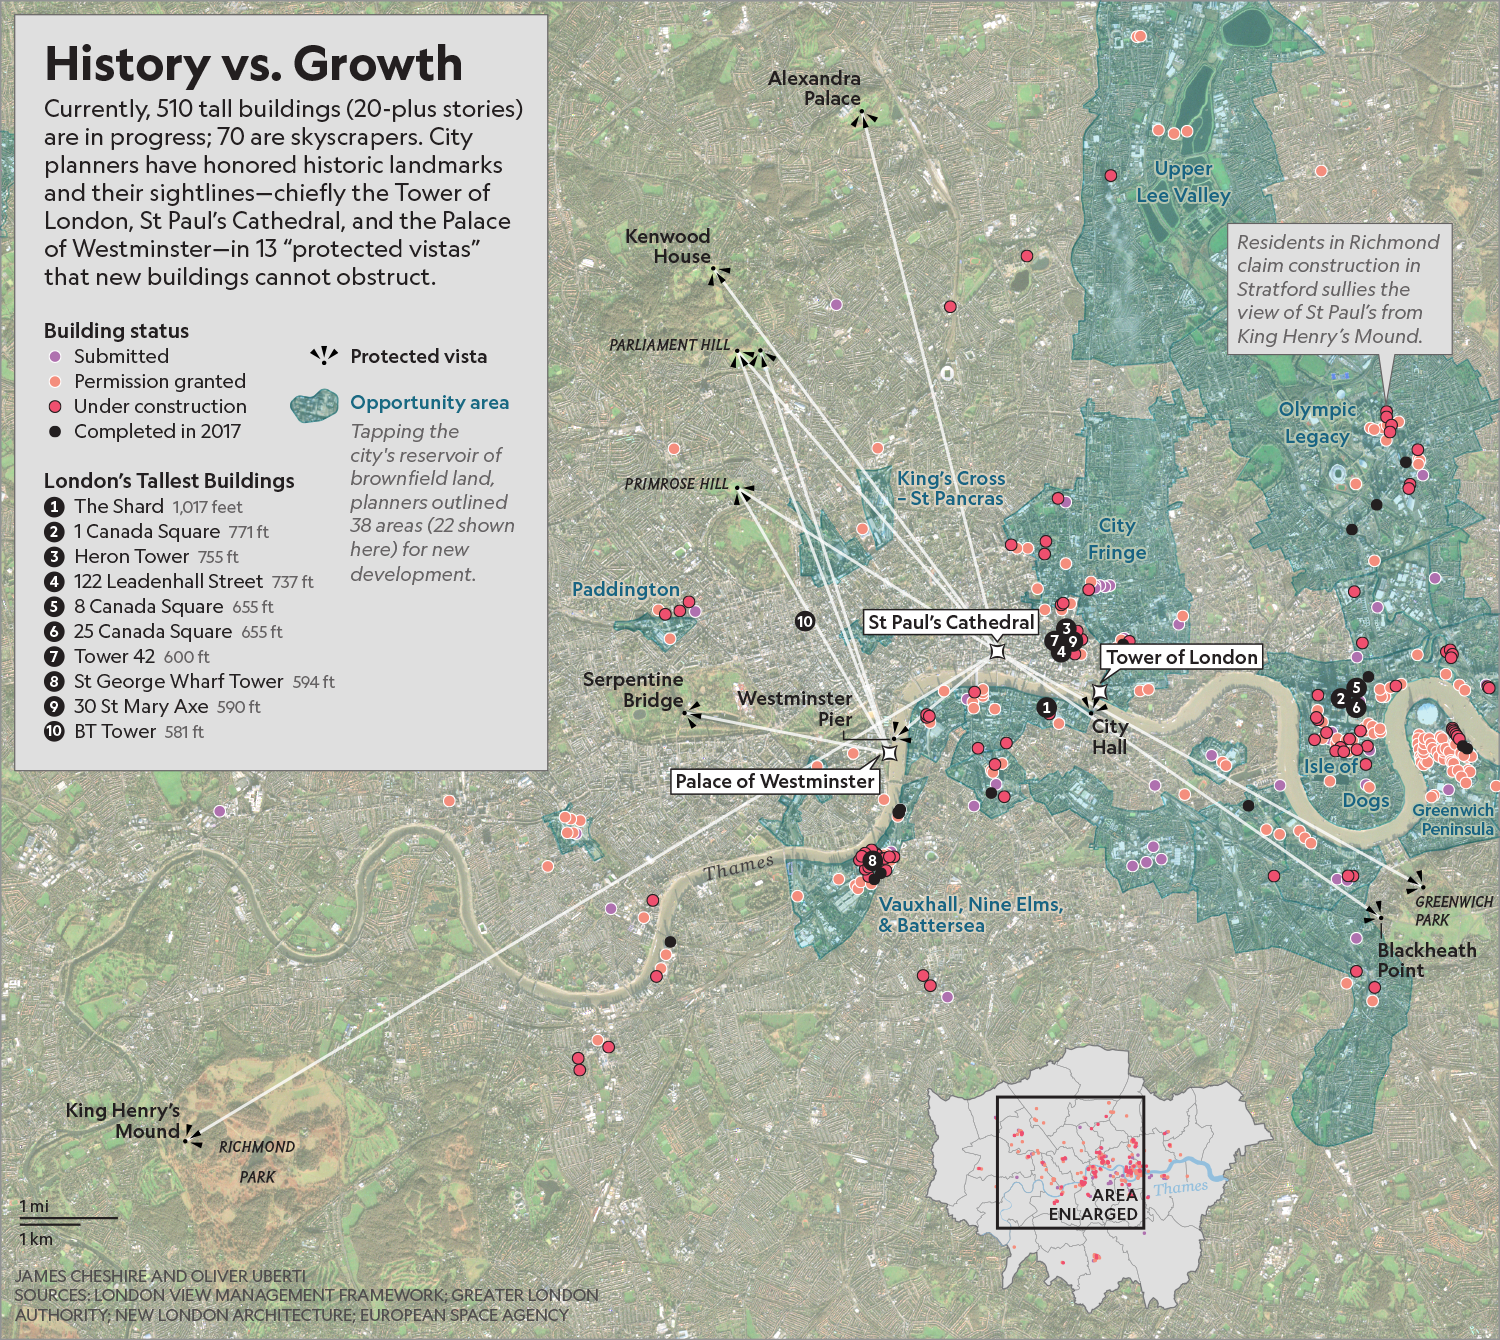 London's Building Boom   National Geographic  2018   2019 Wallis Award for Excellence in Cartography   To license, email:  NatGeoCreative@natgeo.com